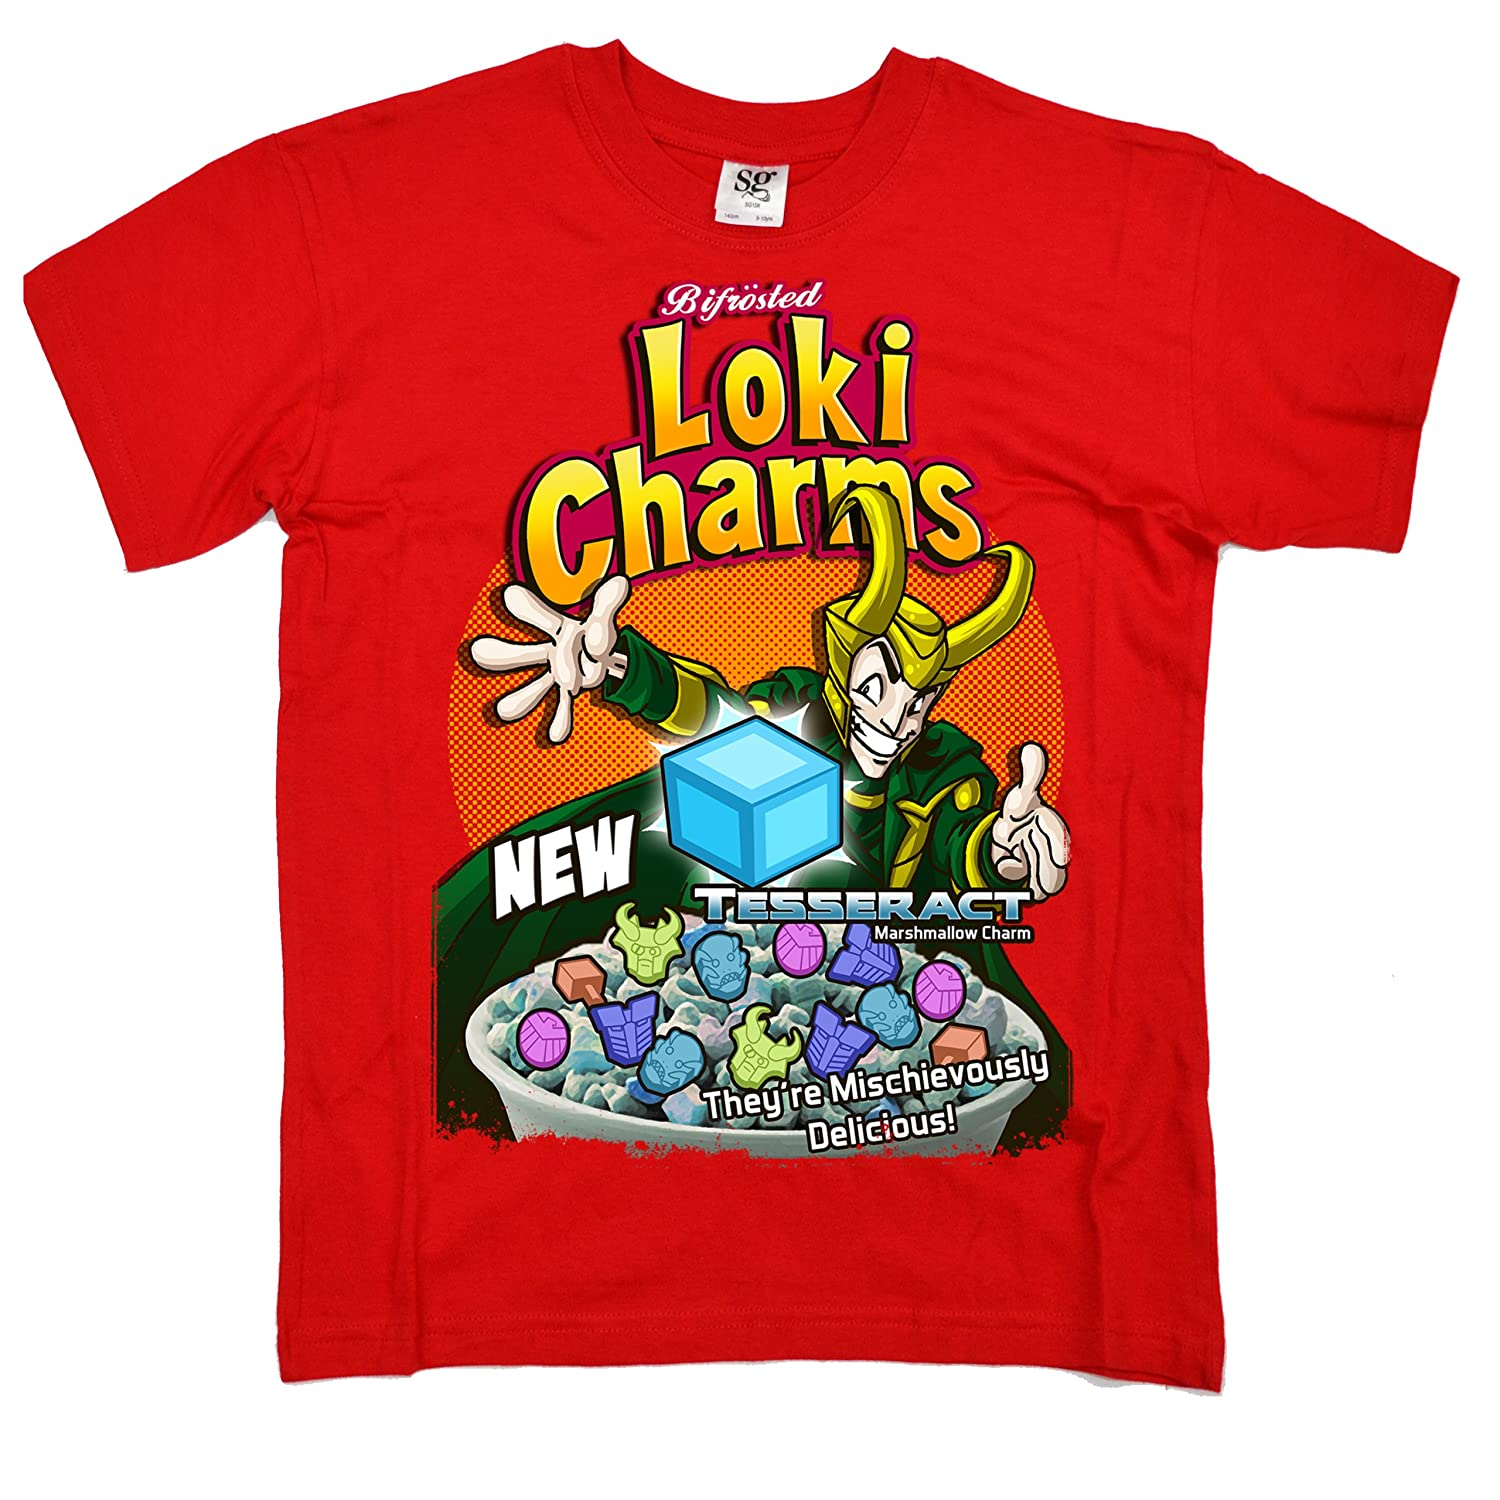 Stooble Boys Bifrosted Loki Charms T-Shirt